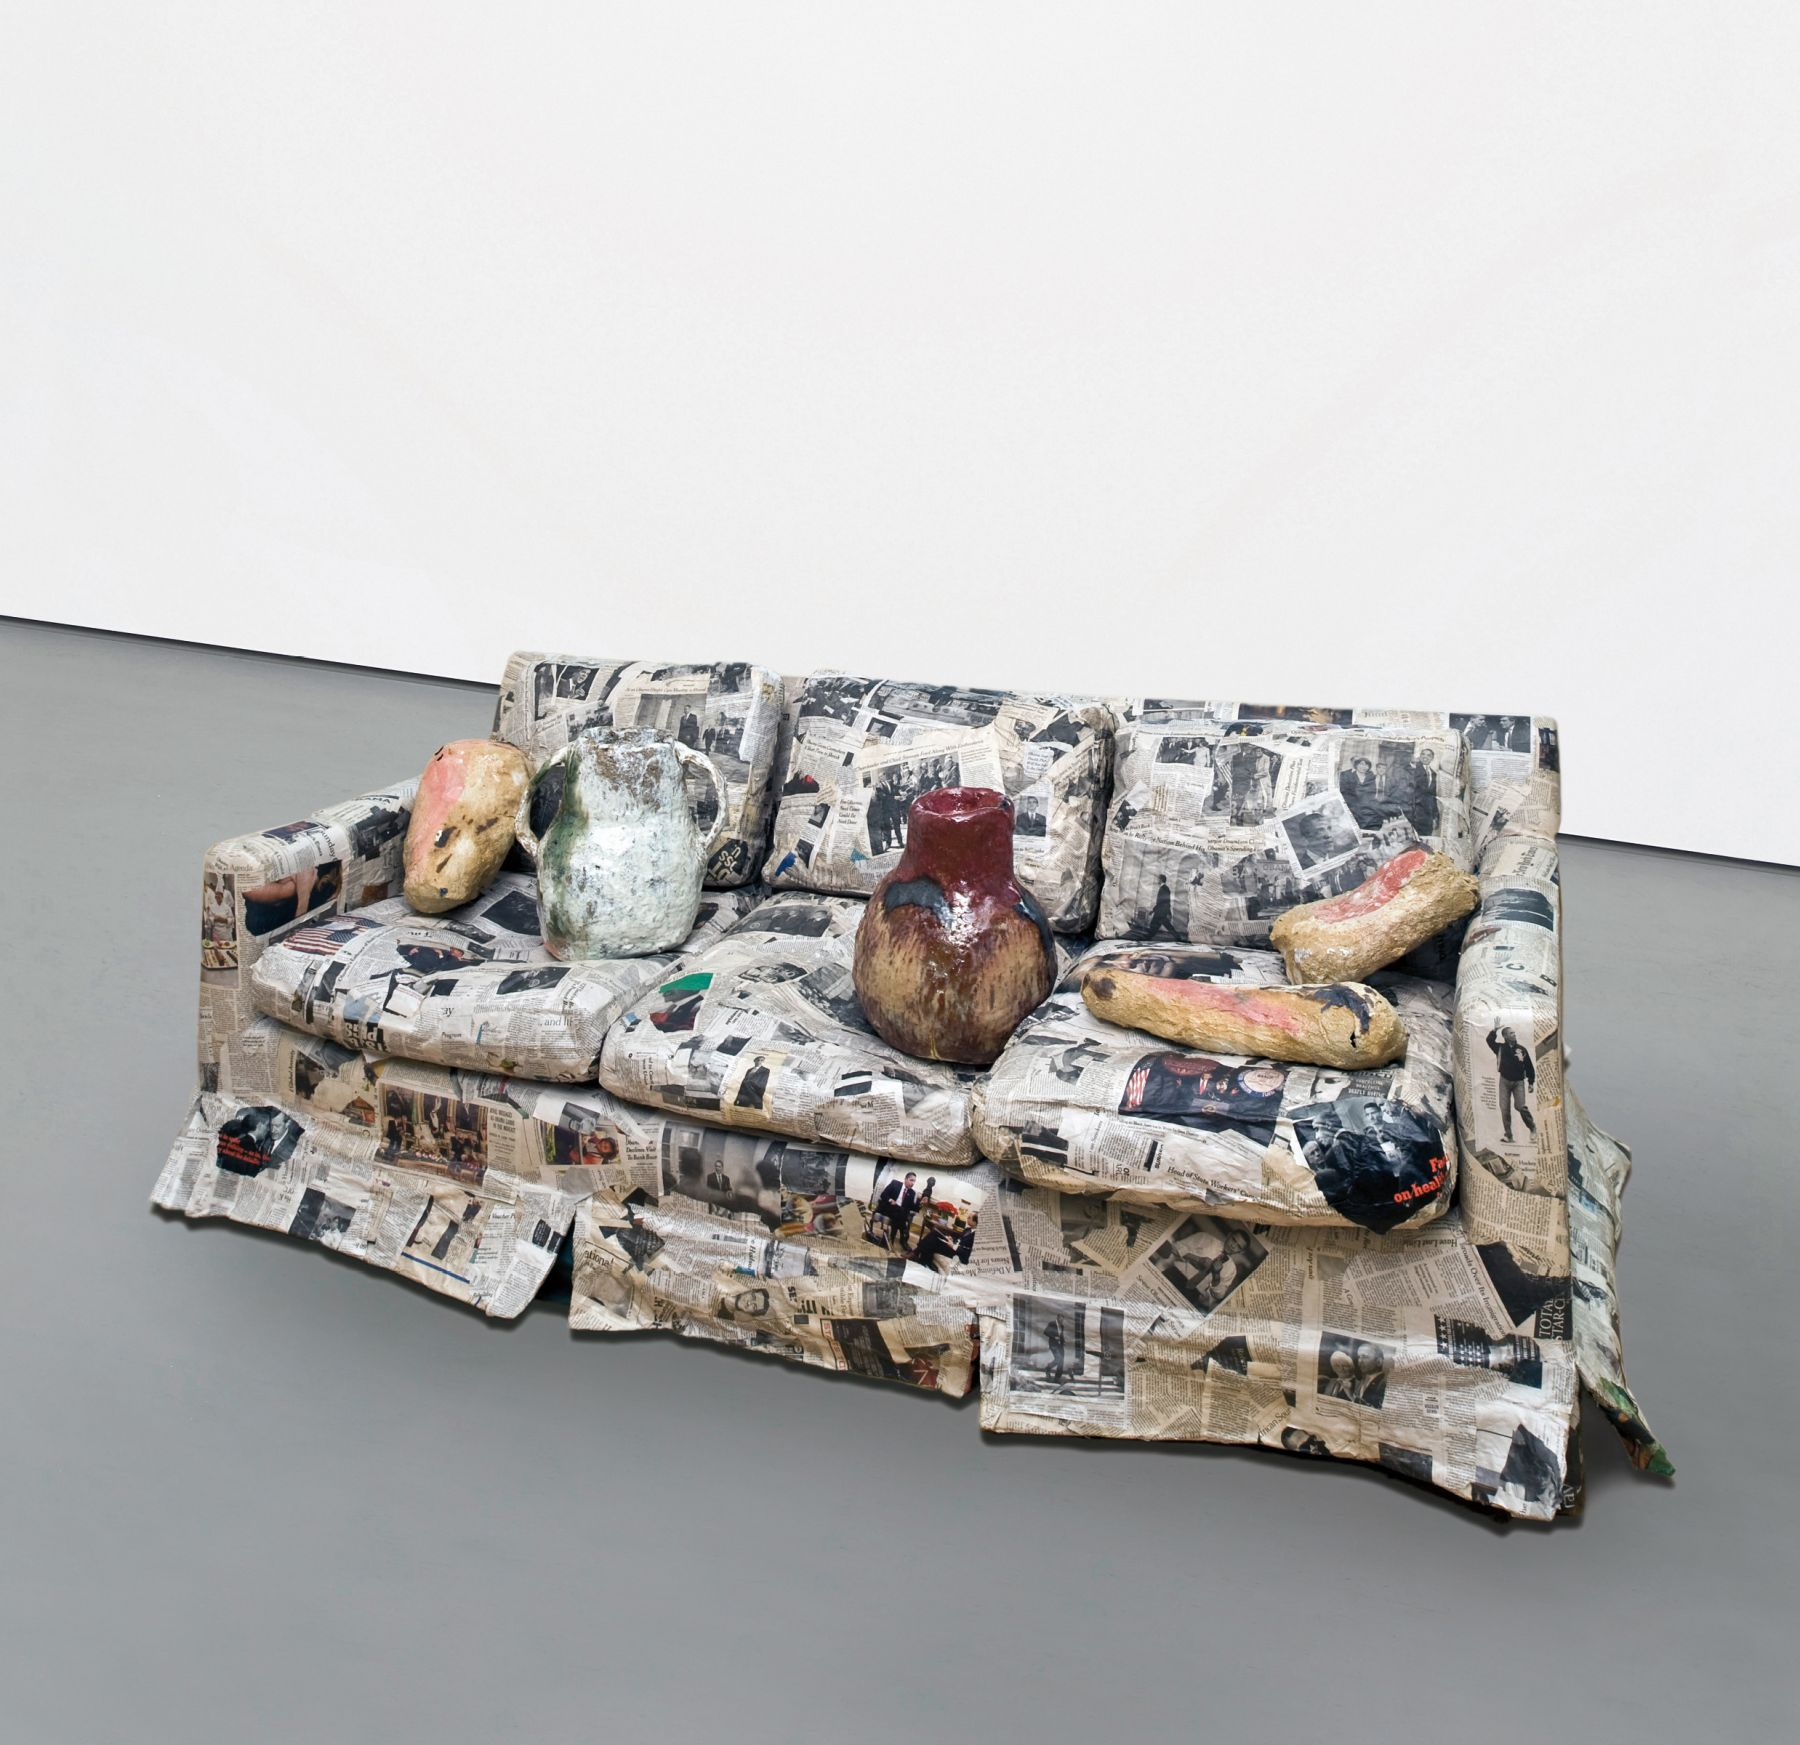 a sofa with ceramic artworks on it by jessica jackson hutchins for sale in an art gallery